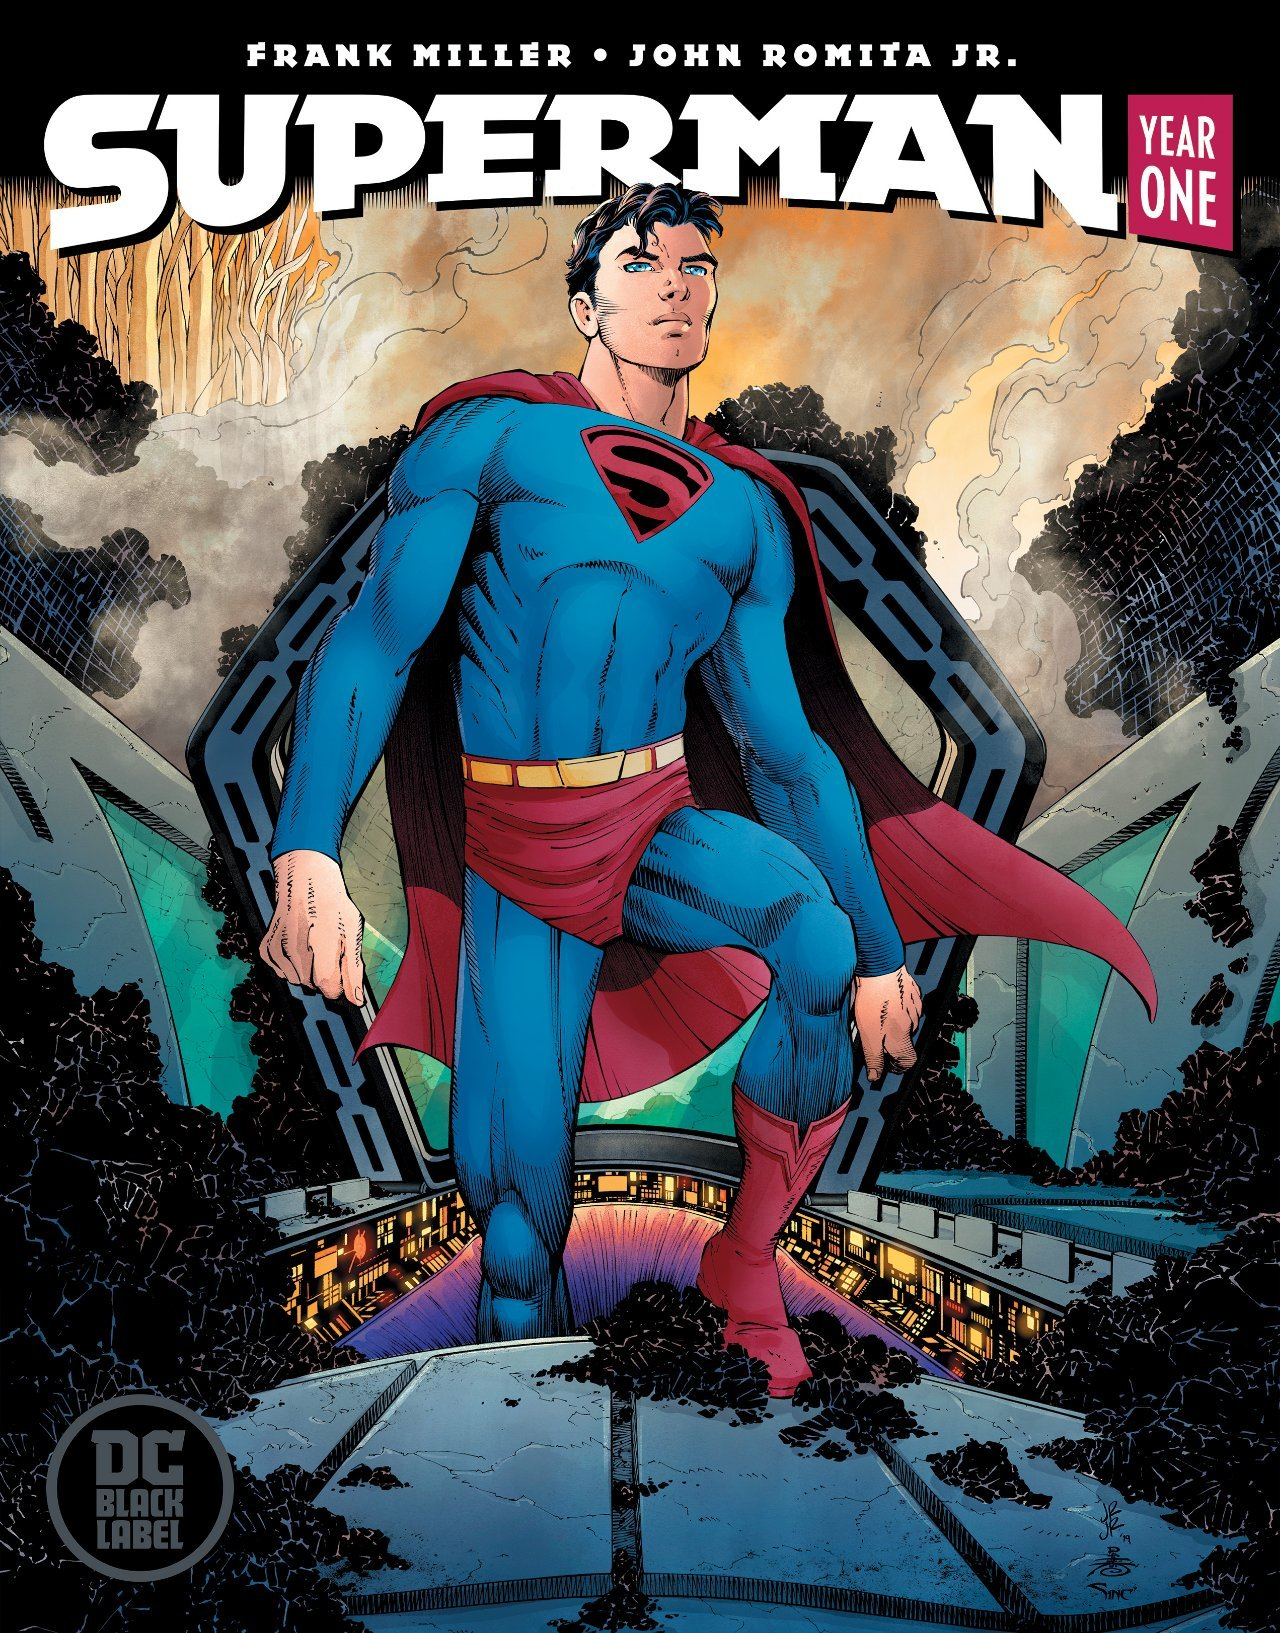 Superman Year One #1 review: An acquired taste